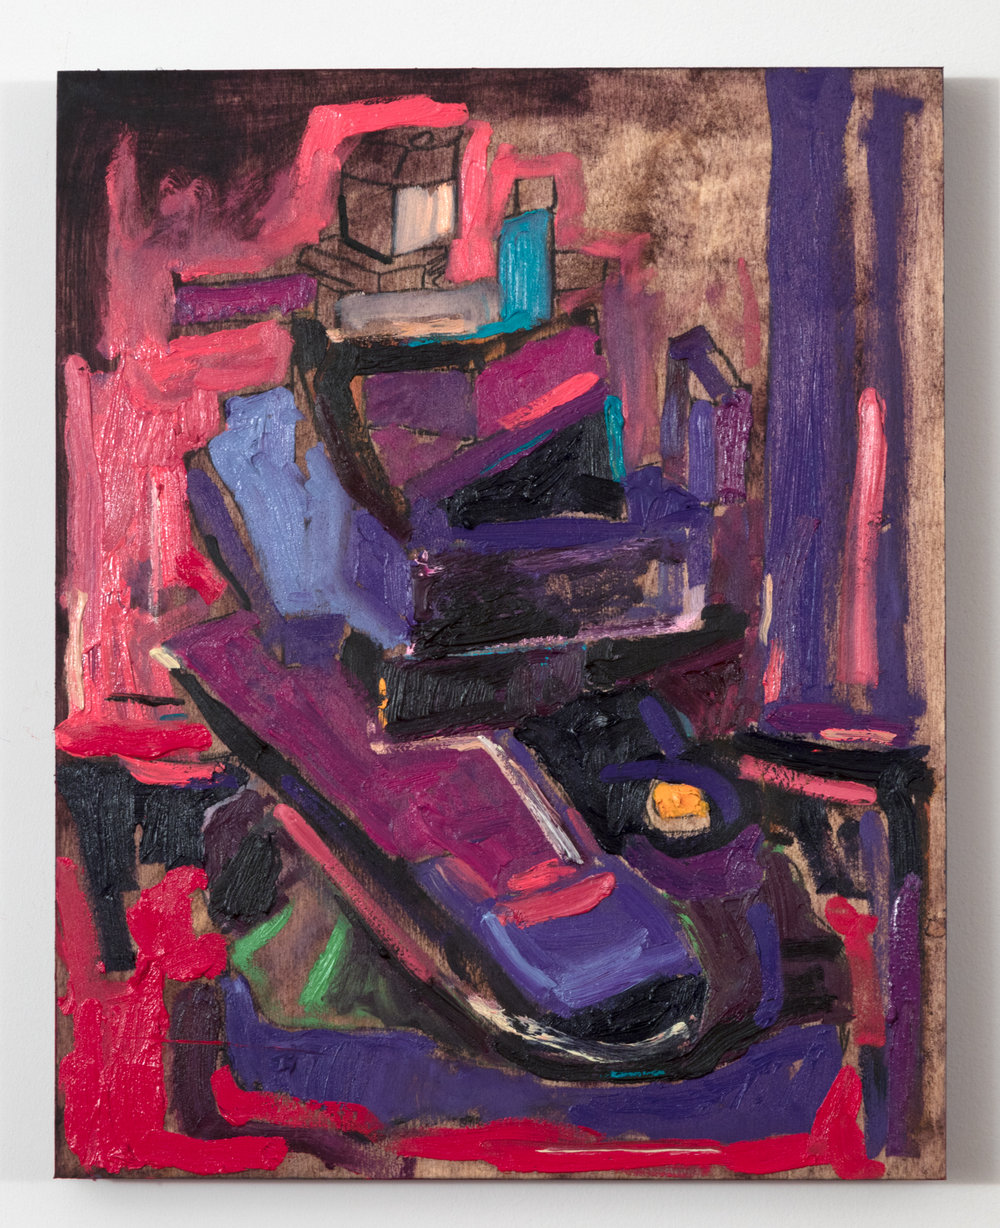 Matthew Varey Bunker 36 2018 20 by 16 inches Oil on Plywood Panel